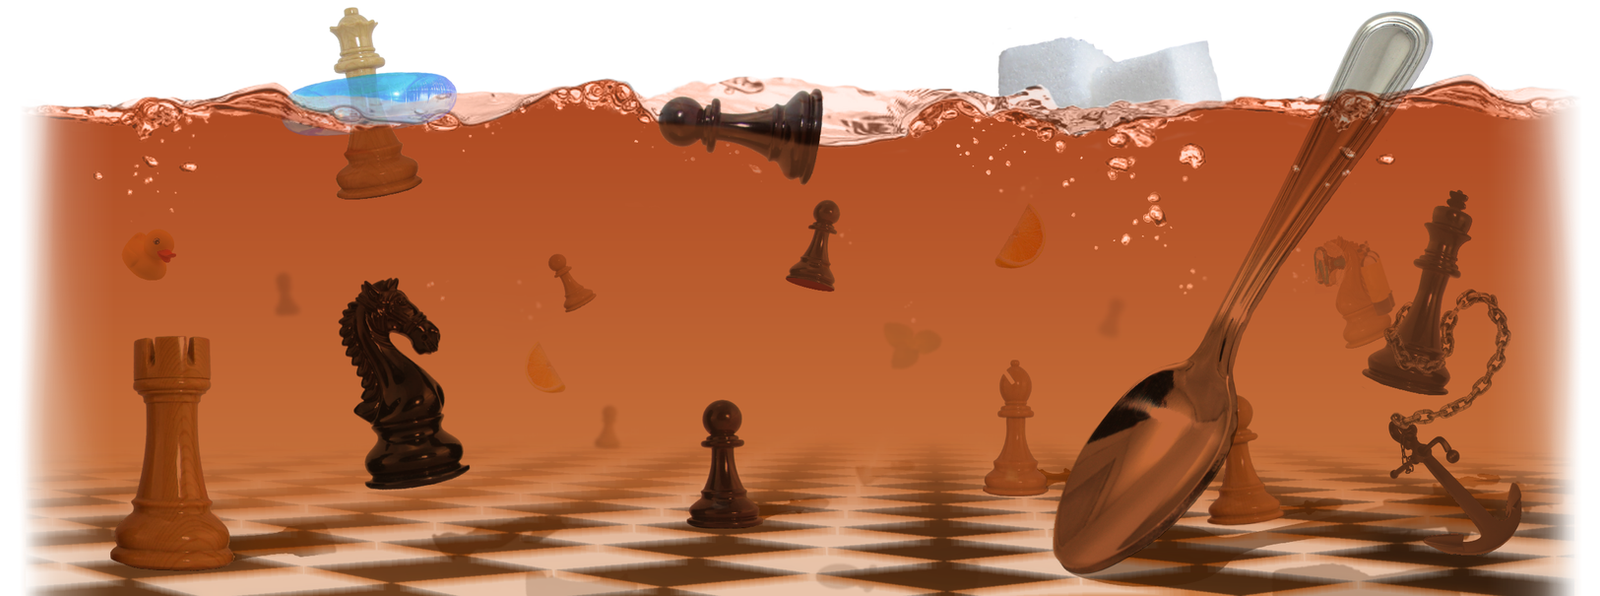 Would you care for a spot of chess? by NfERnOv2